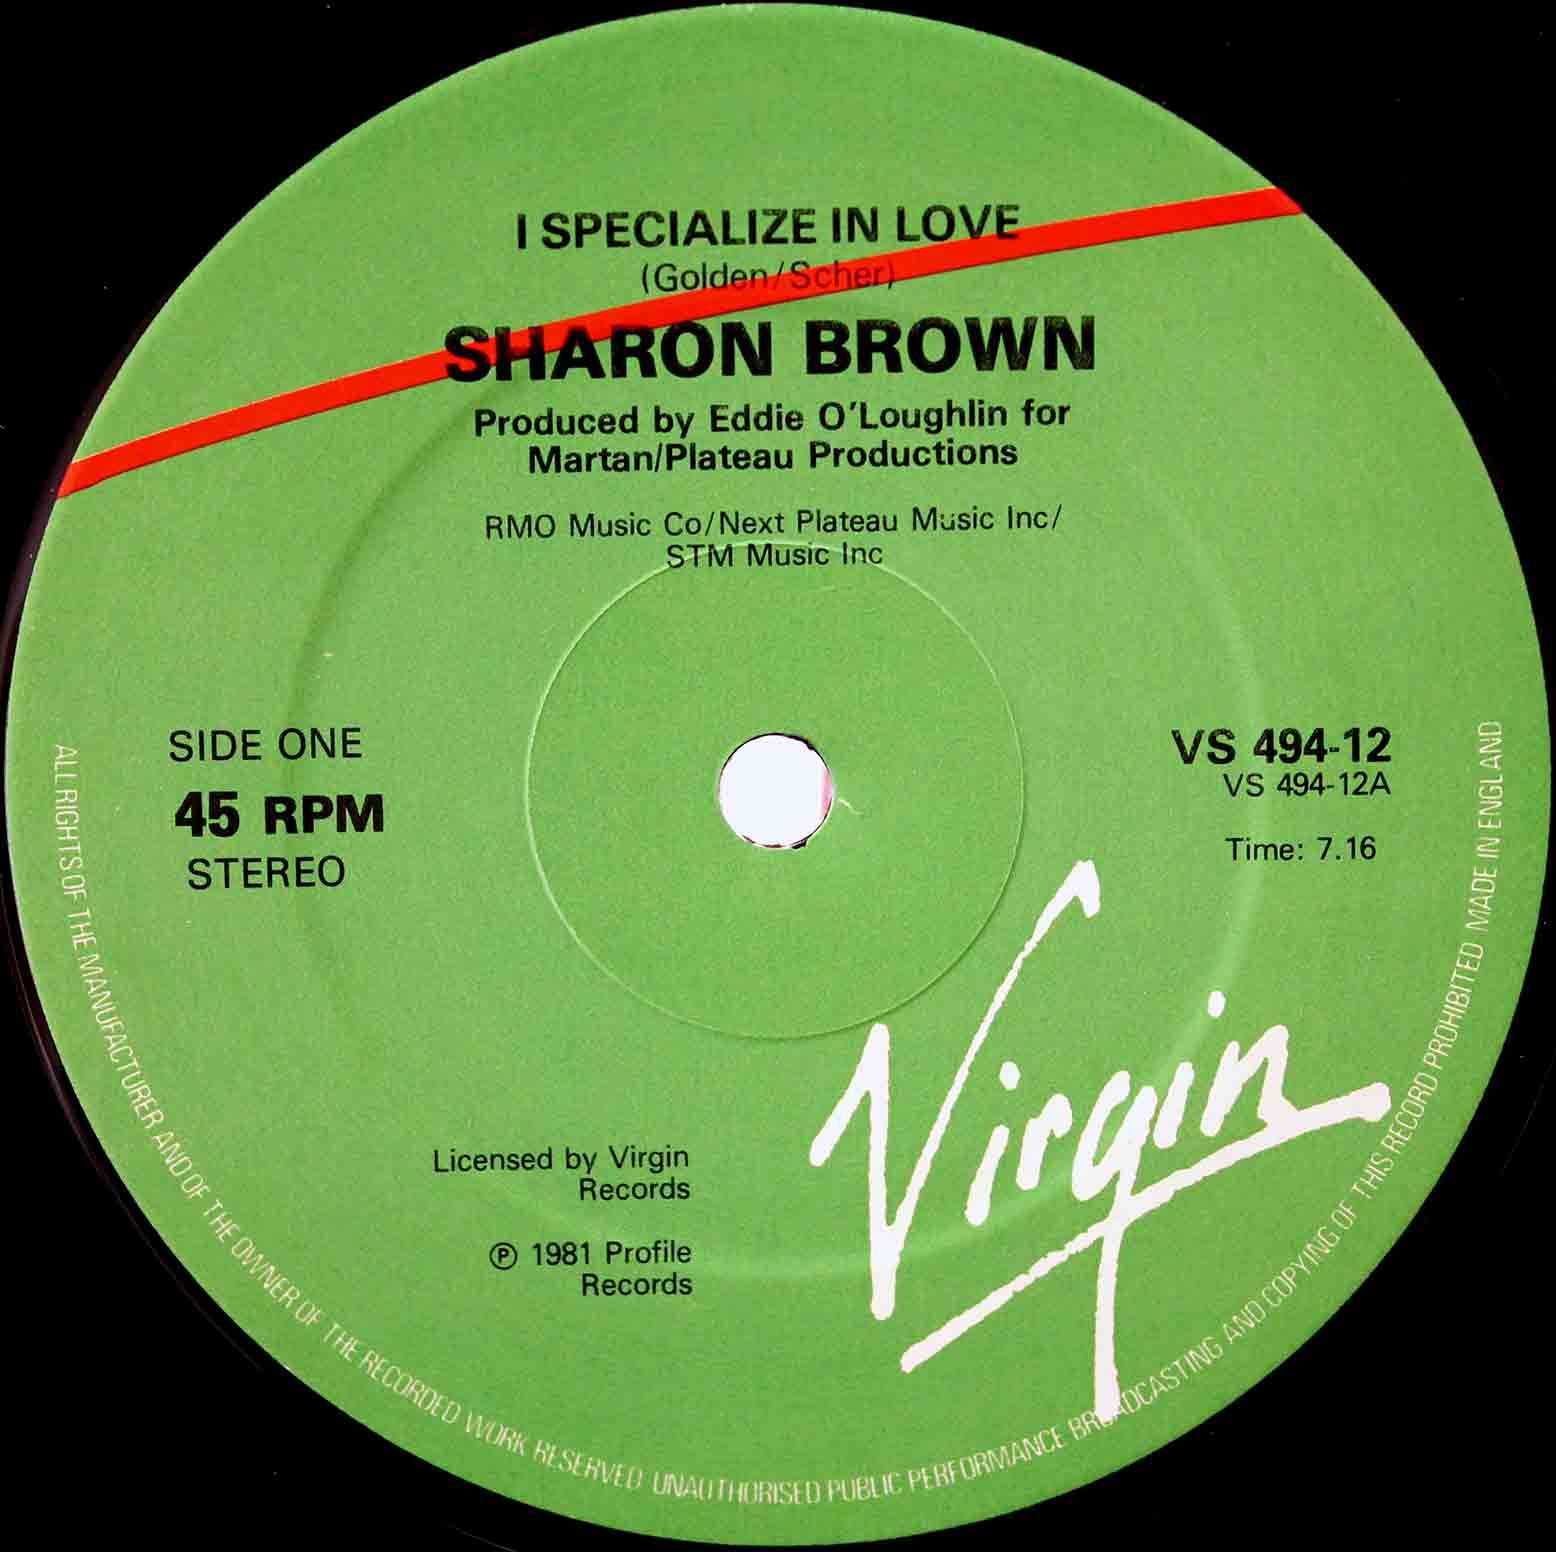 Sharon Brown – I Specialize In Love 03